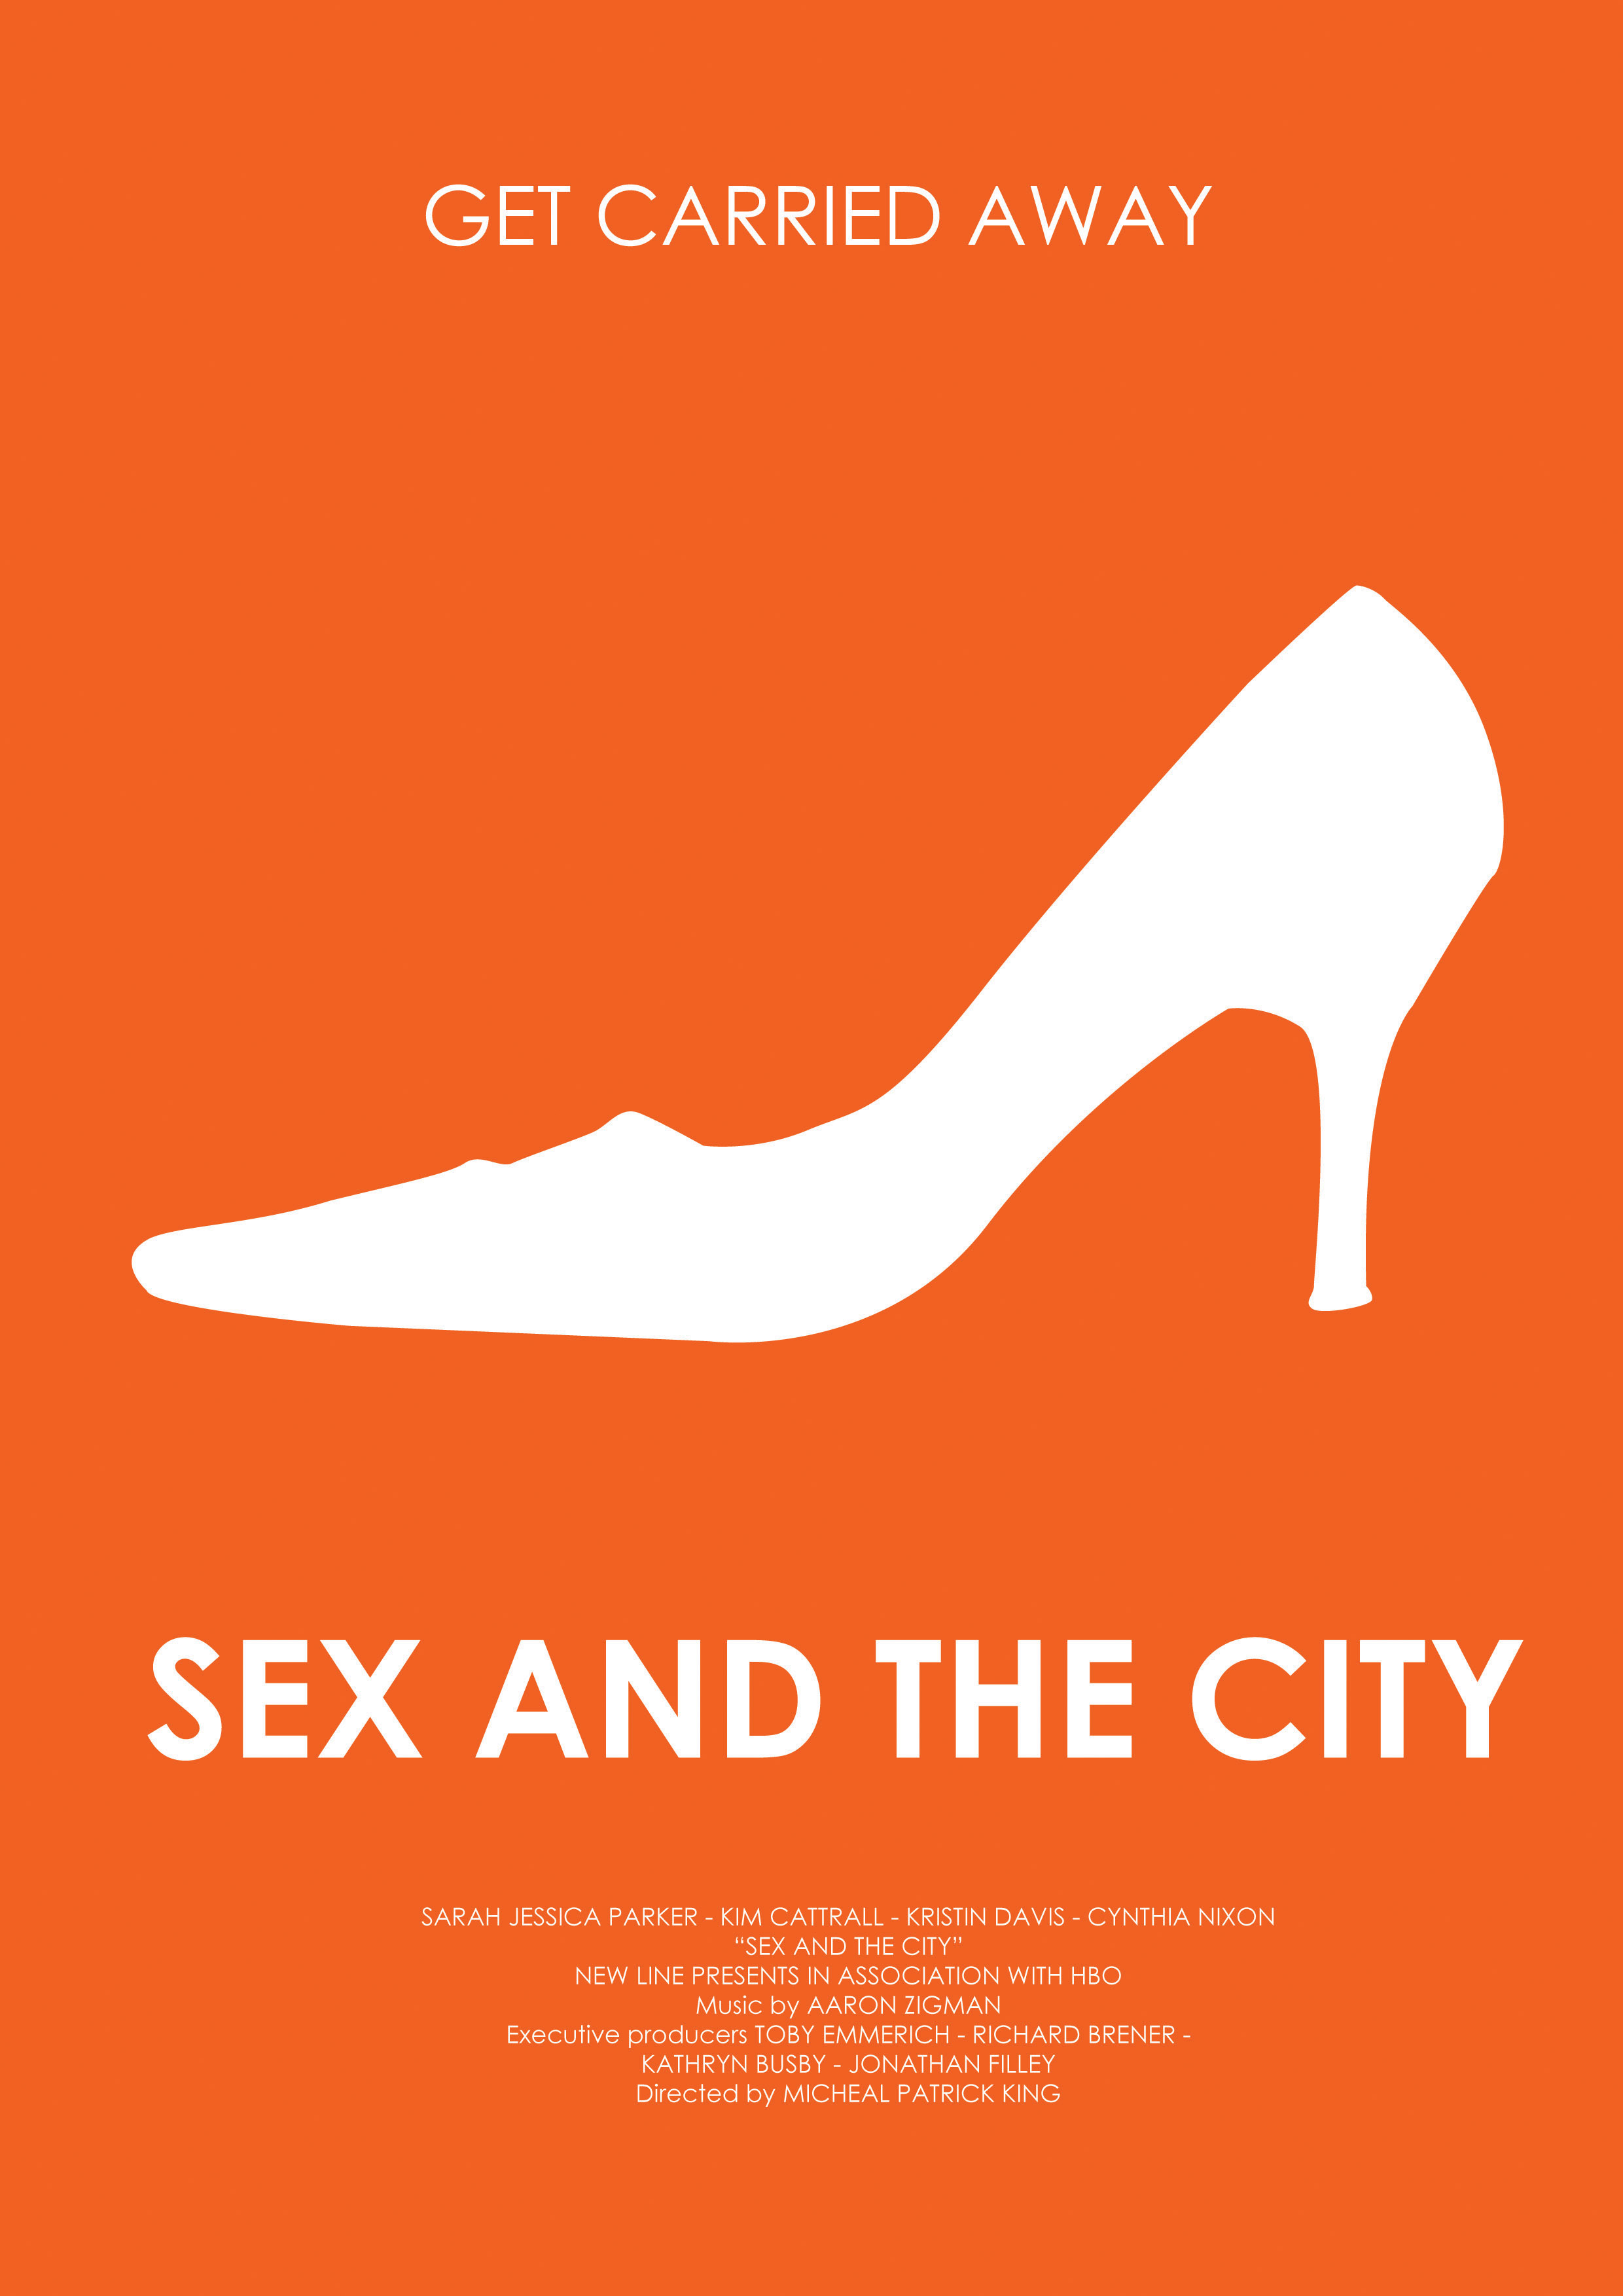 Sex and the city prints